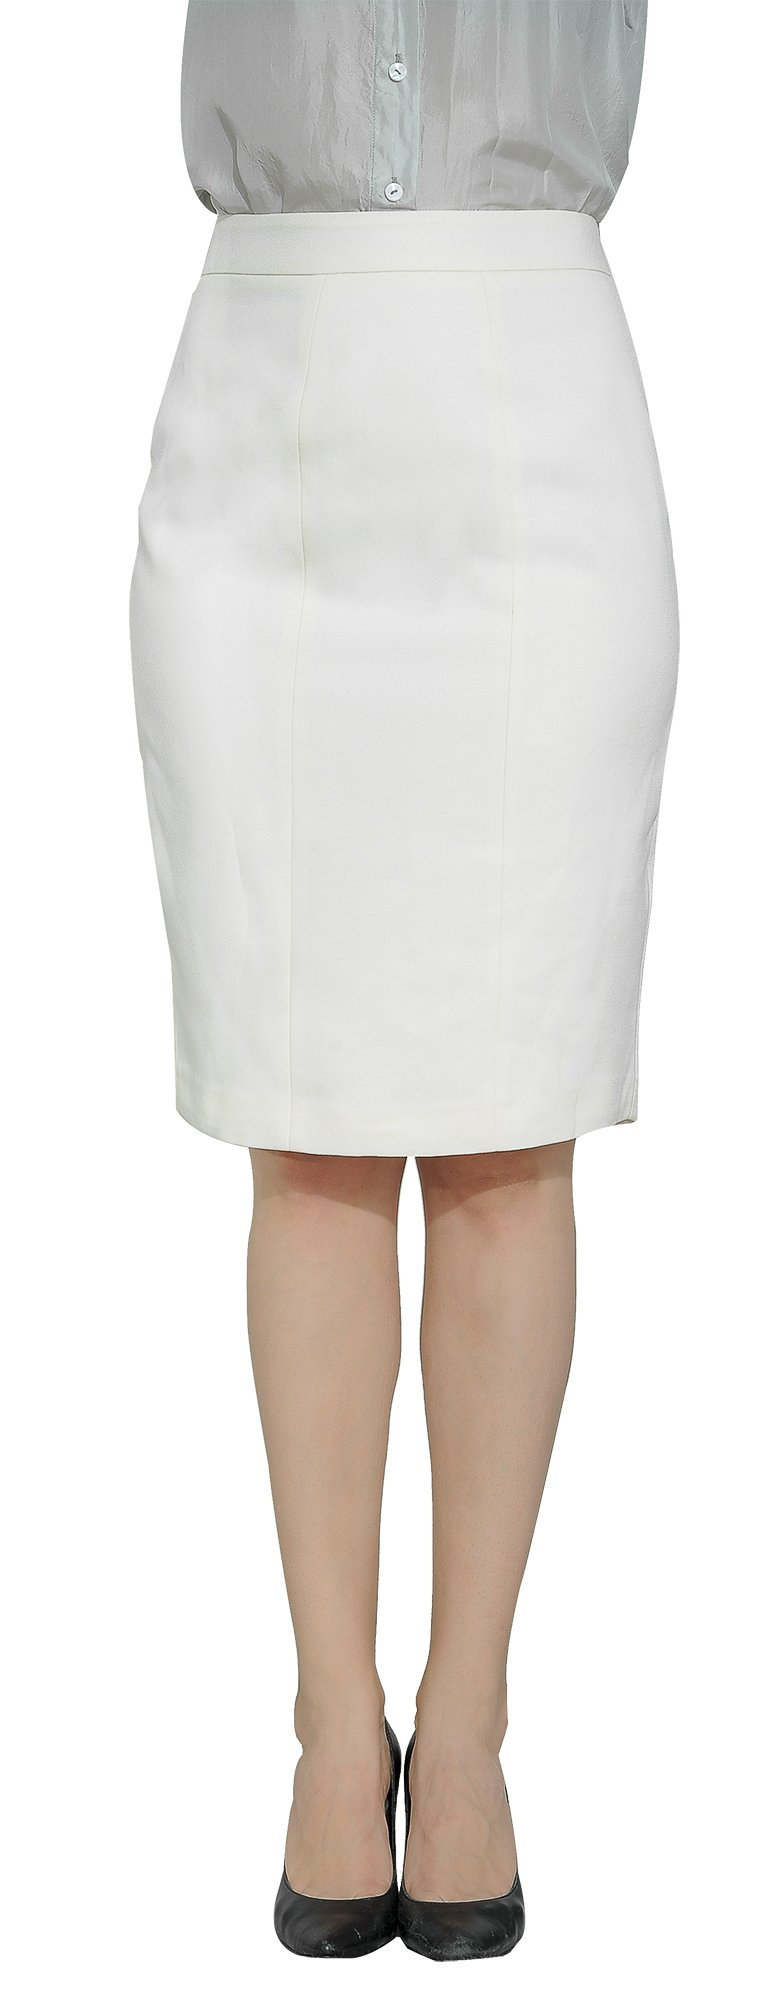 Marycrafts Women's Lined Pencil Skirt 4 Work Business Office 10 Beige by Marycrafts (Image #4)